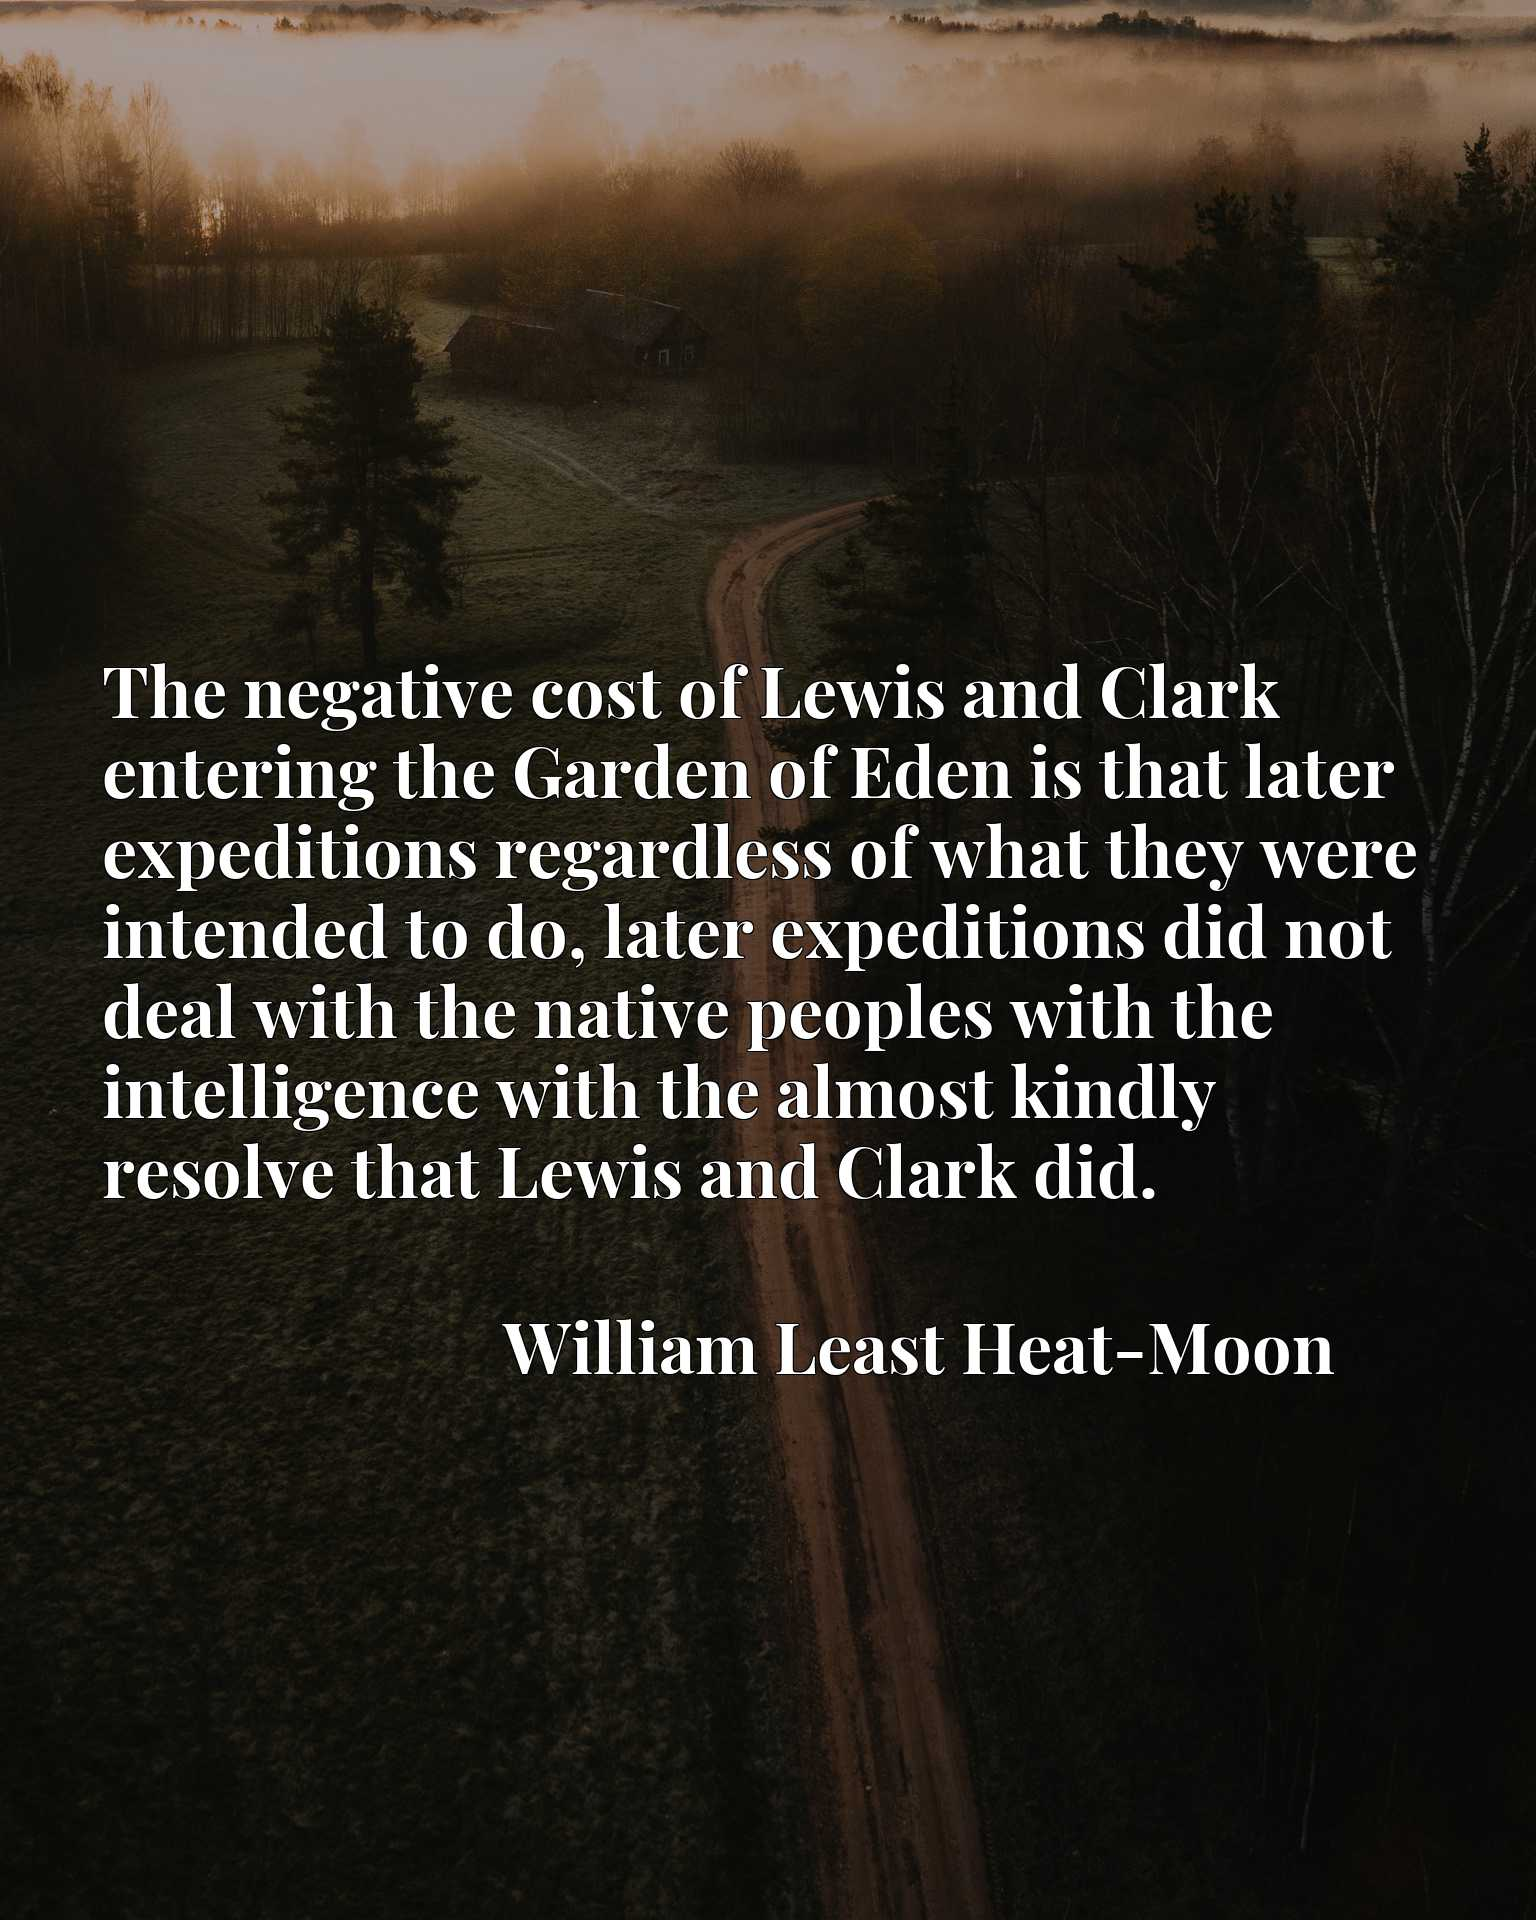 The negative cost of Lewis and Clark entering the Garden of Eden is that later expeditions regardless of what they were intended to do, later expeditions did not deal with the native peoples with the intelligence with the almost kindly resolve that Lewis and Clark did.